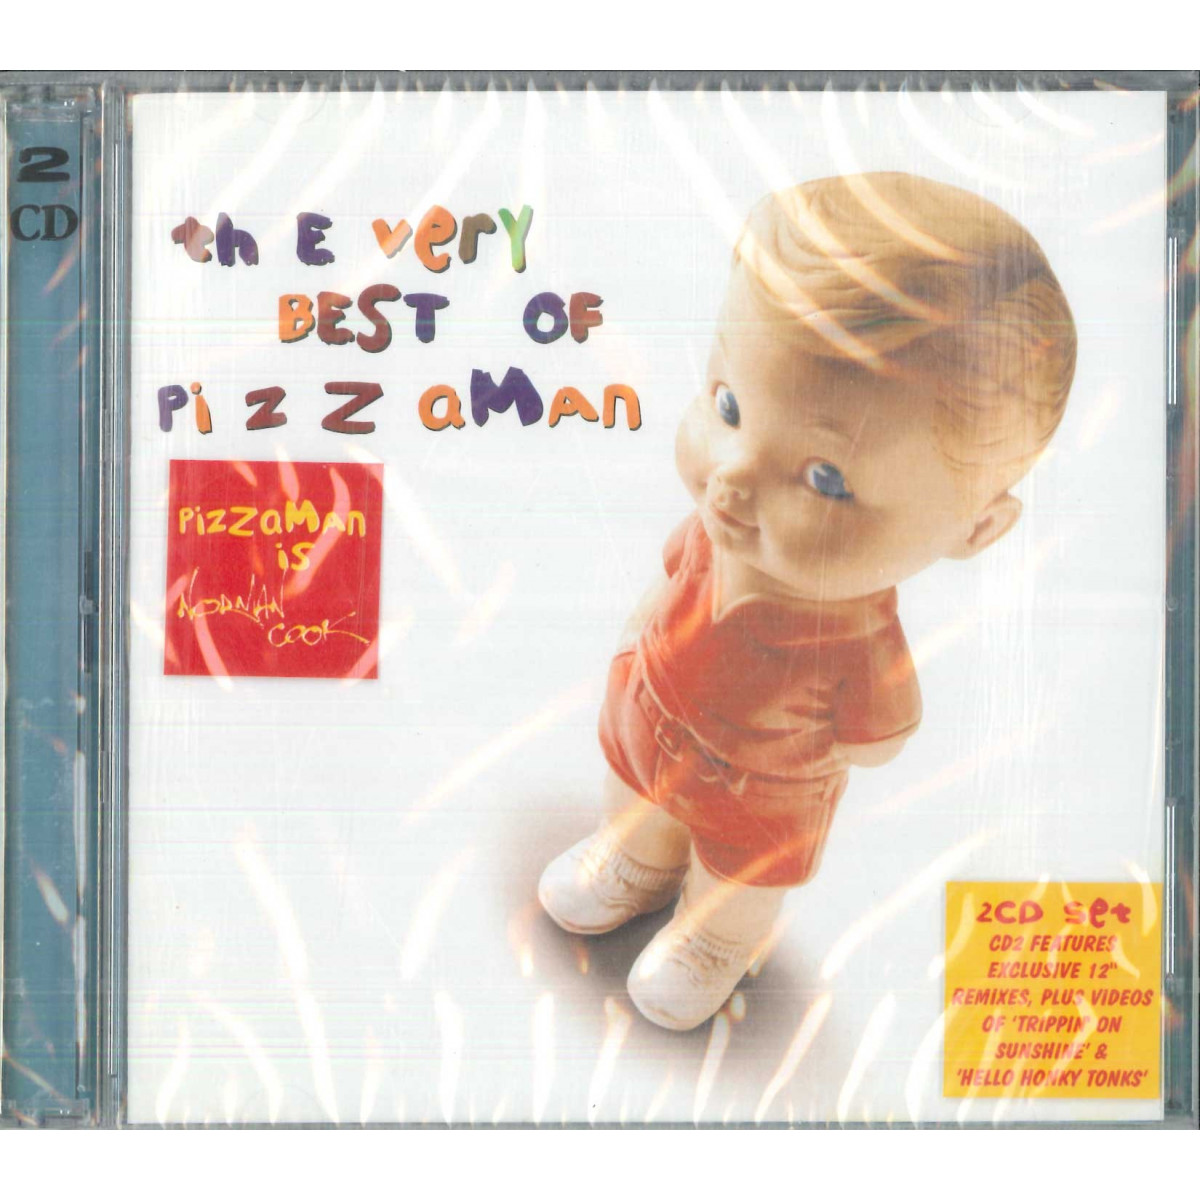 Pizzaman CD The Very Best Of Pizzaman Nuovo Sigillato 5034504114722